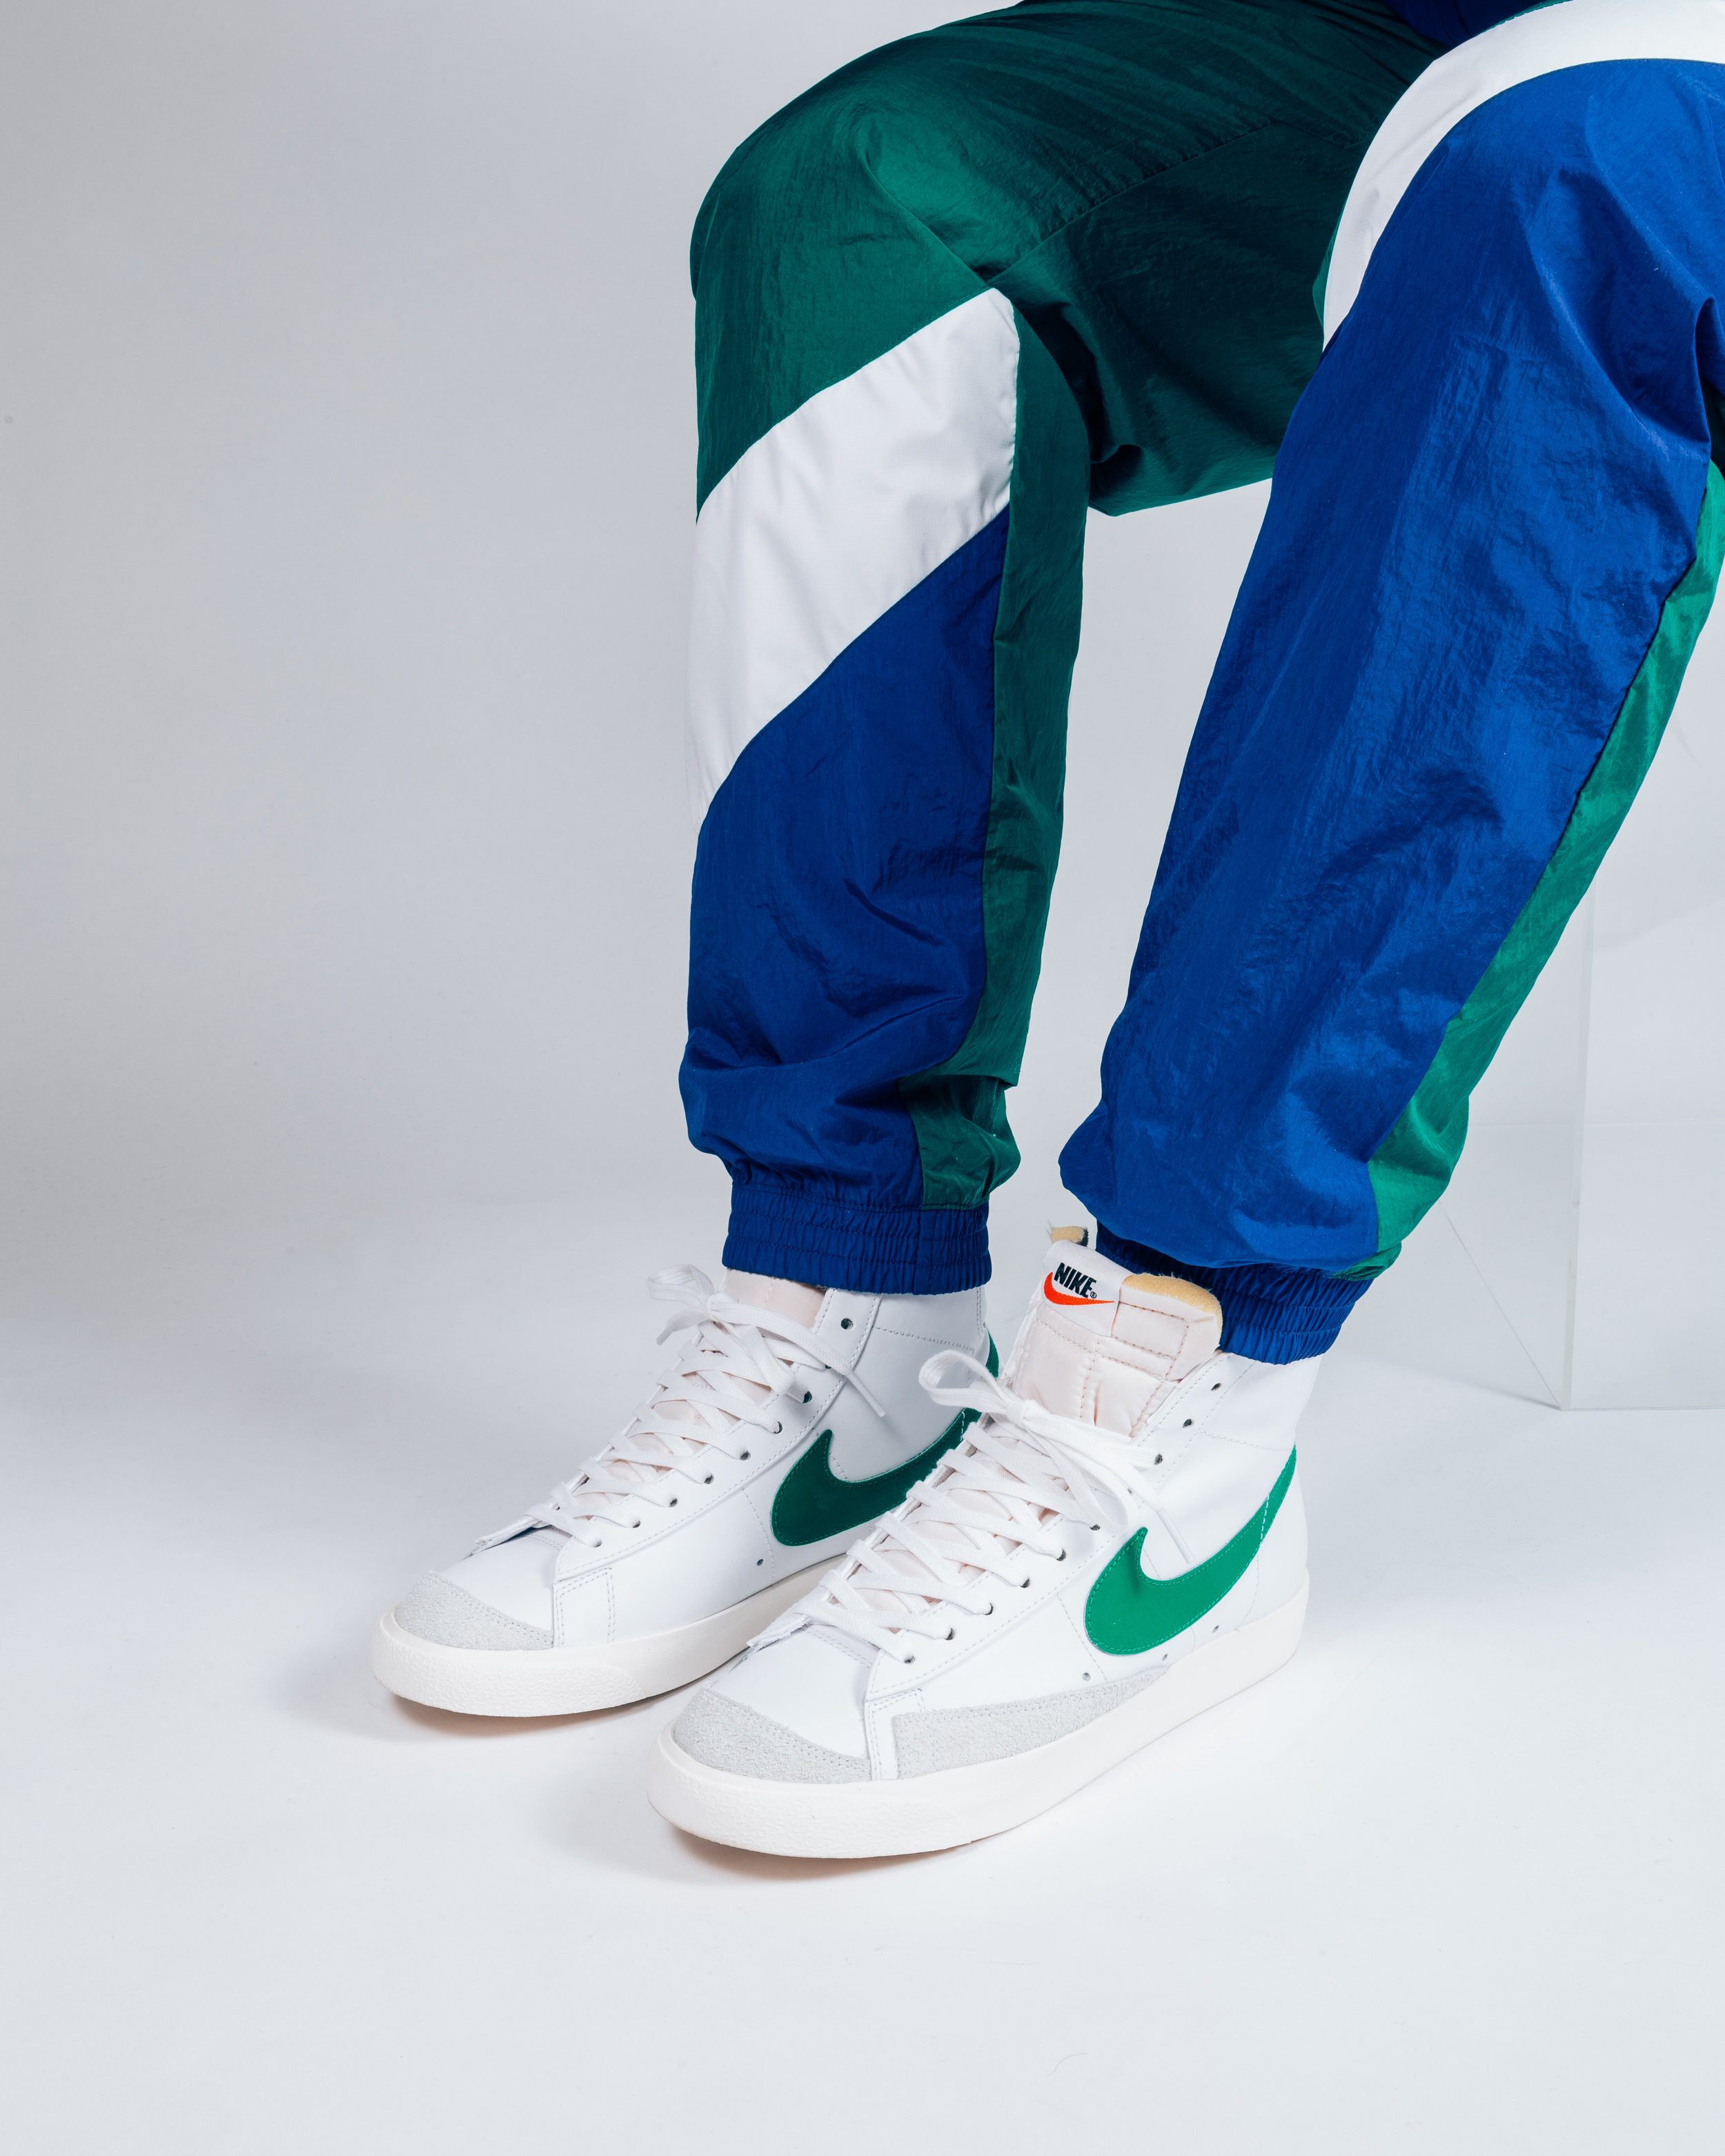 """The Nike Sportswear Blazer Mid VNTG in """"Lucid Green"""" paired with a re-issued Vintage Nike Sportswear Track Pant(Matching Jacket available too)."""